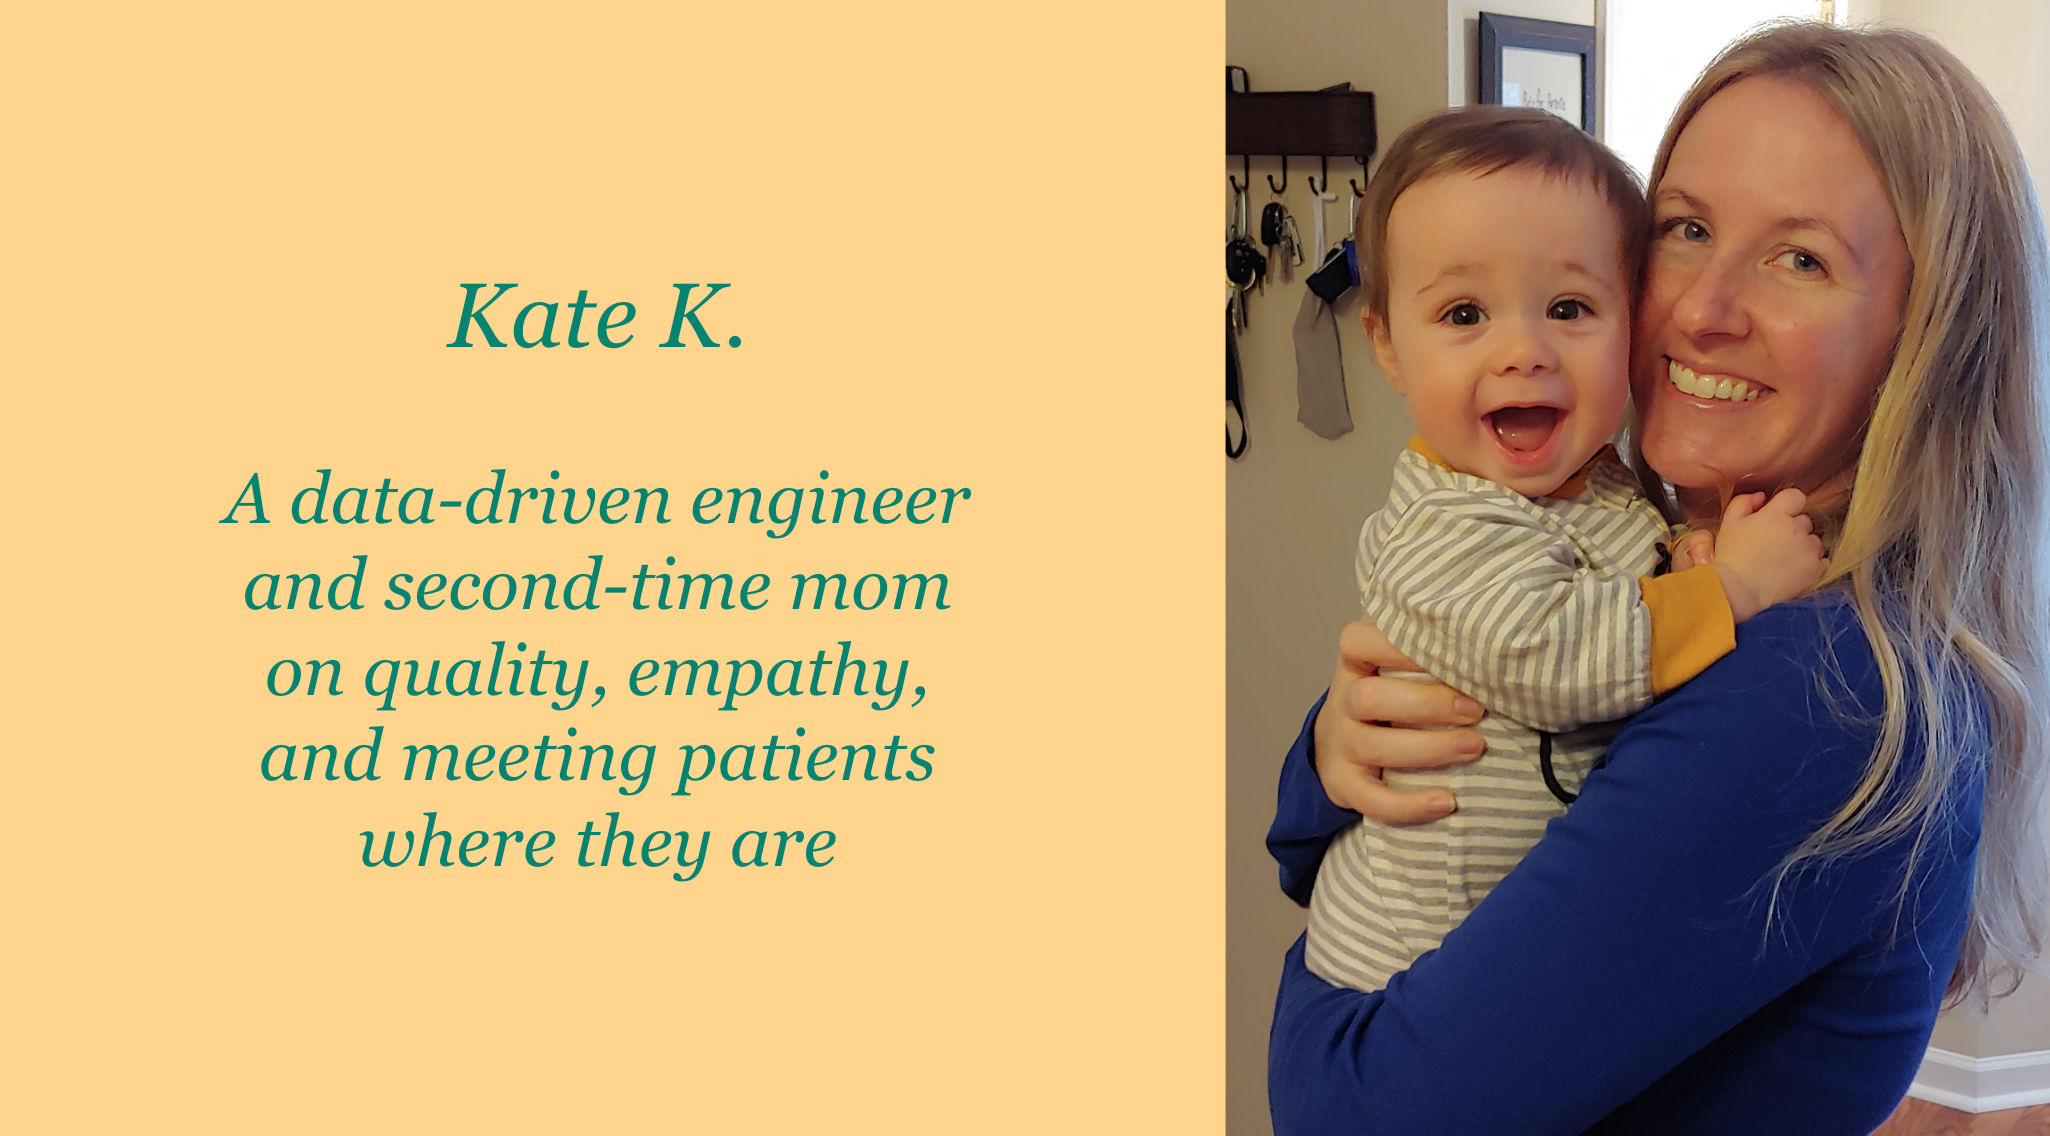 Kate's Maven Member Moment: Instant access to quality maternity care